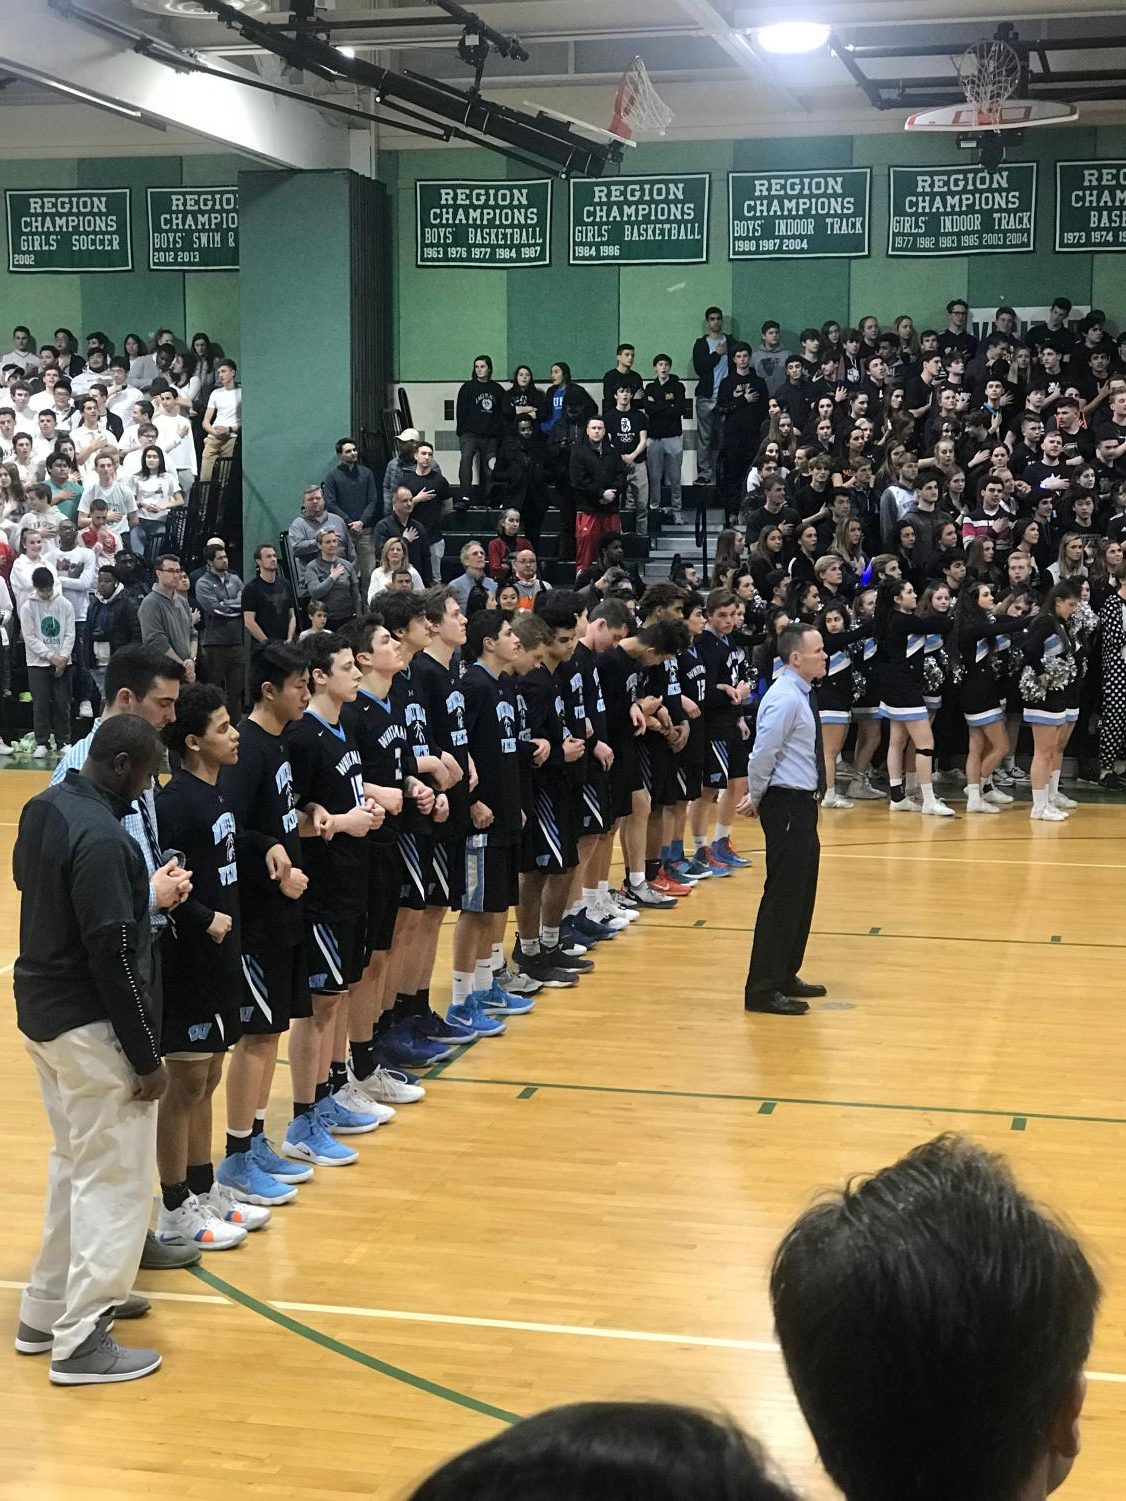 The boys basketball team lines up for the national anthem before the team's playoff loss against the Walter Johnson Wildcats. The team ended their season in a heartbreaking overtime loss, but the players are proud of what they accomplished this season. Photo courtesy Blake Layman.